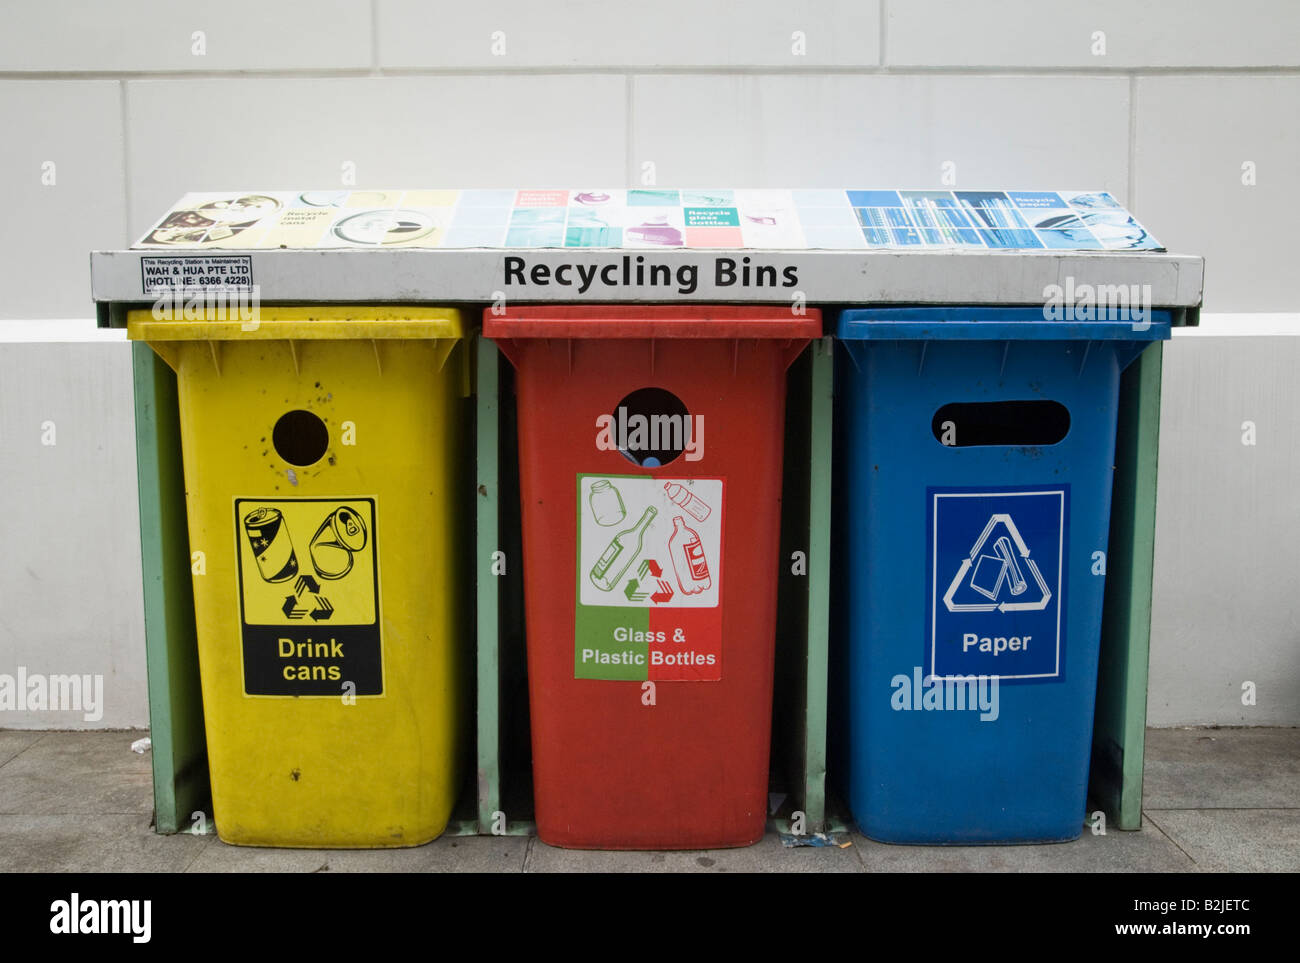 Three colour coded plastic recycling bins for aluminium drink cans, glass and plastic, and paper - Stock Image